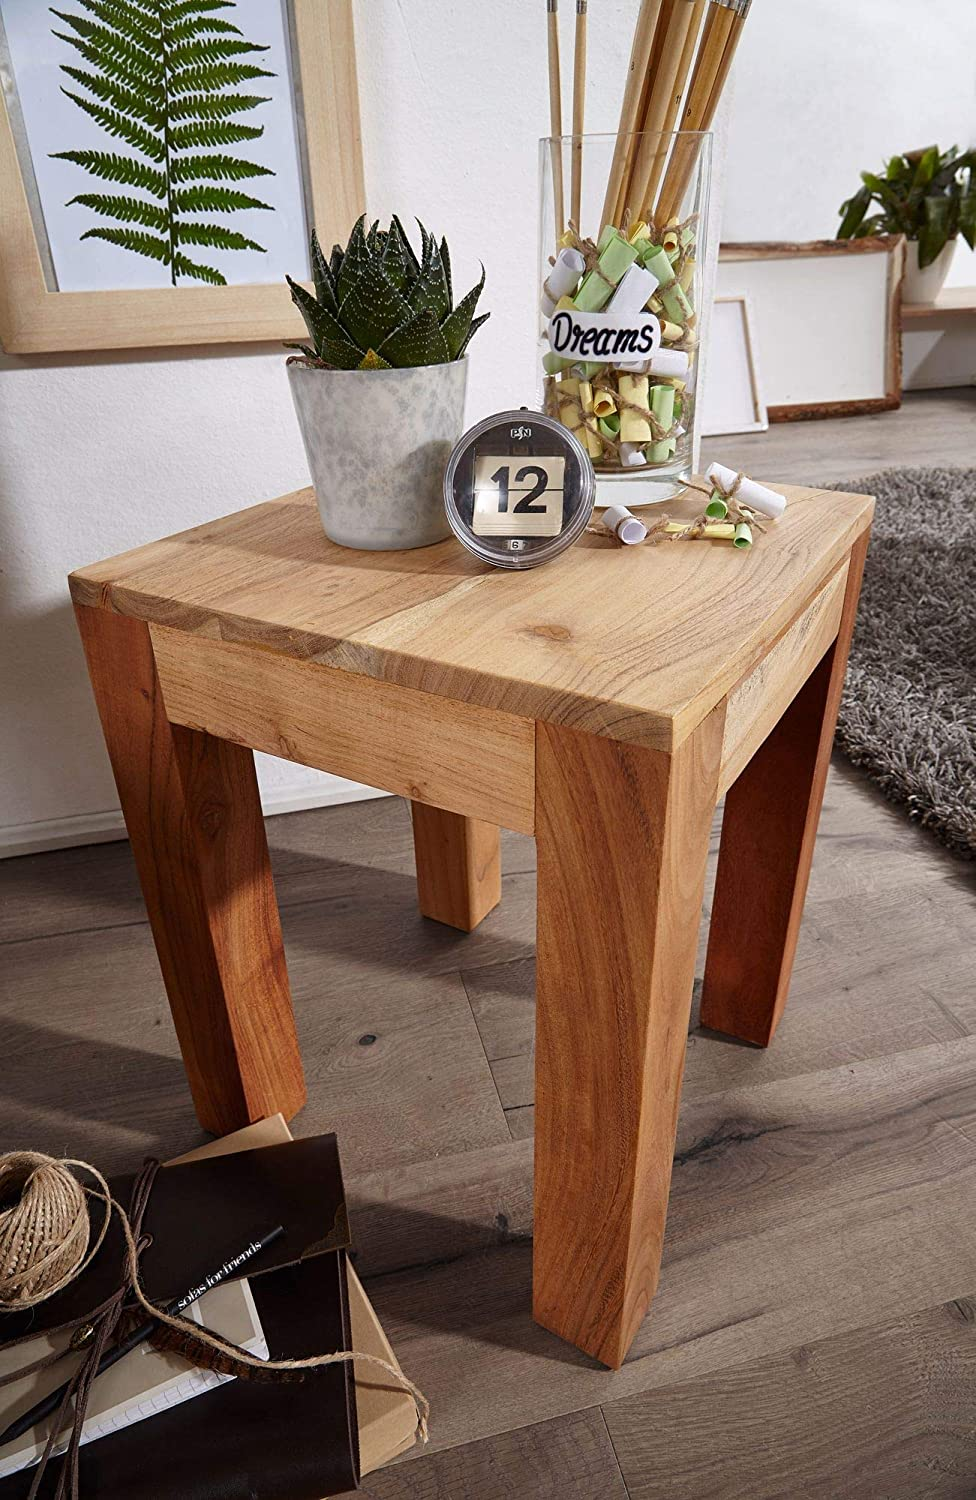 Square Storage Table Country Style Coffee Table Sofa Table Finebuy Side Table Solid Wood Acacia 35 X 45 X 35 Cm End Table Living Room Small Lounge Table Furniture Living Room Furniture